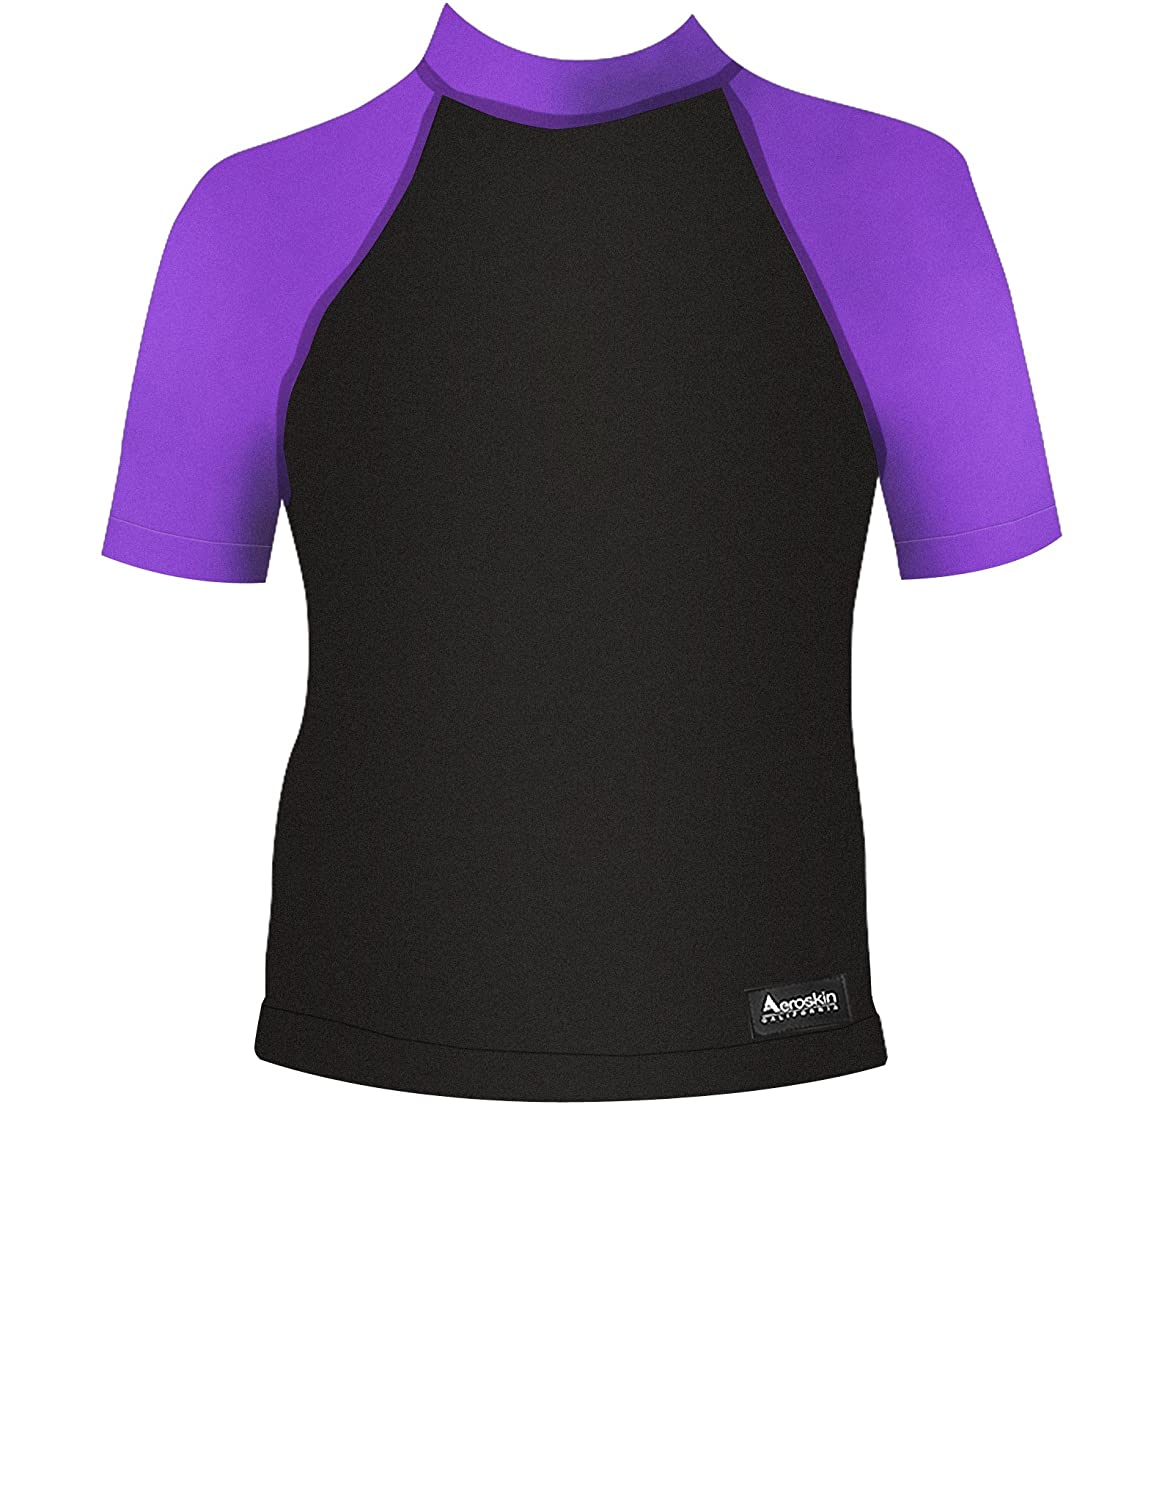 Aeroskin Polypropylene Short Sleeve with Grippers and Fuzzy Collar P352